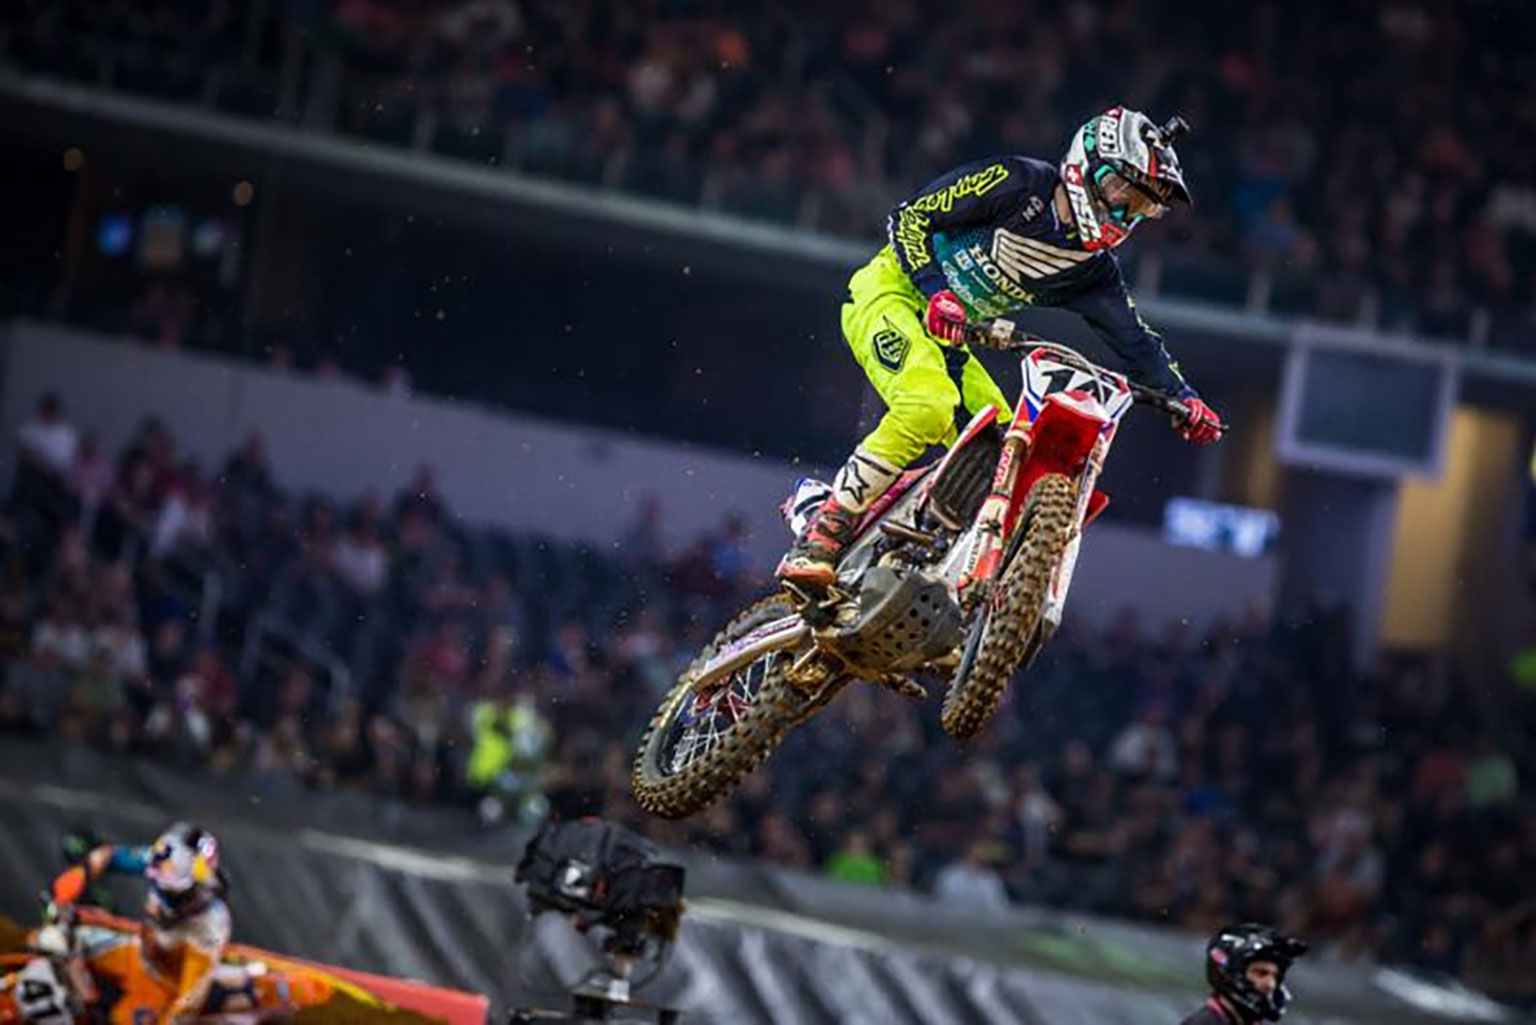 Seely ended on the podium